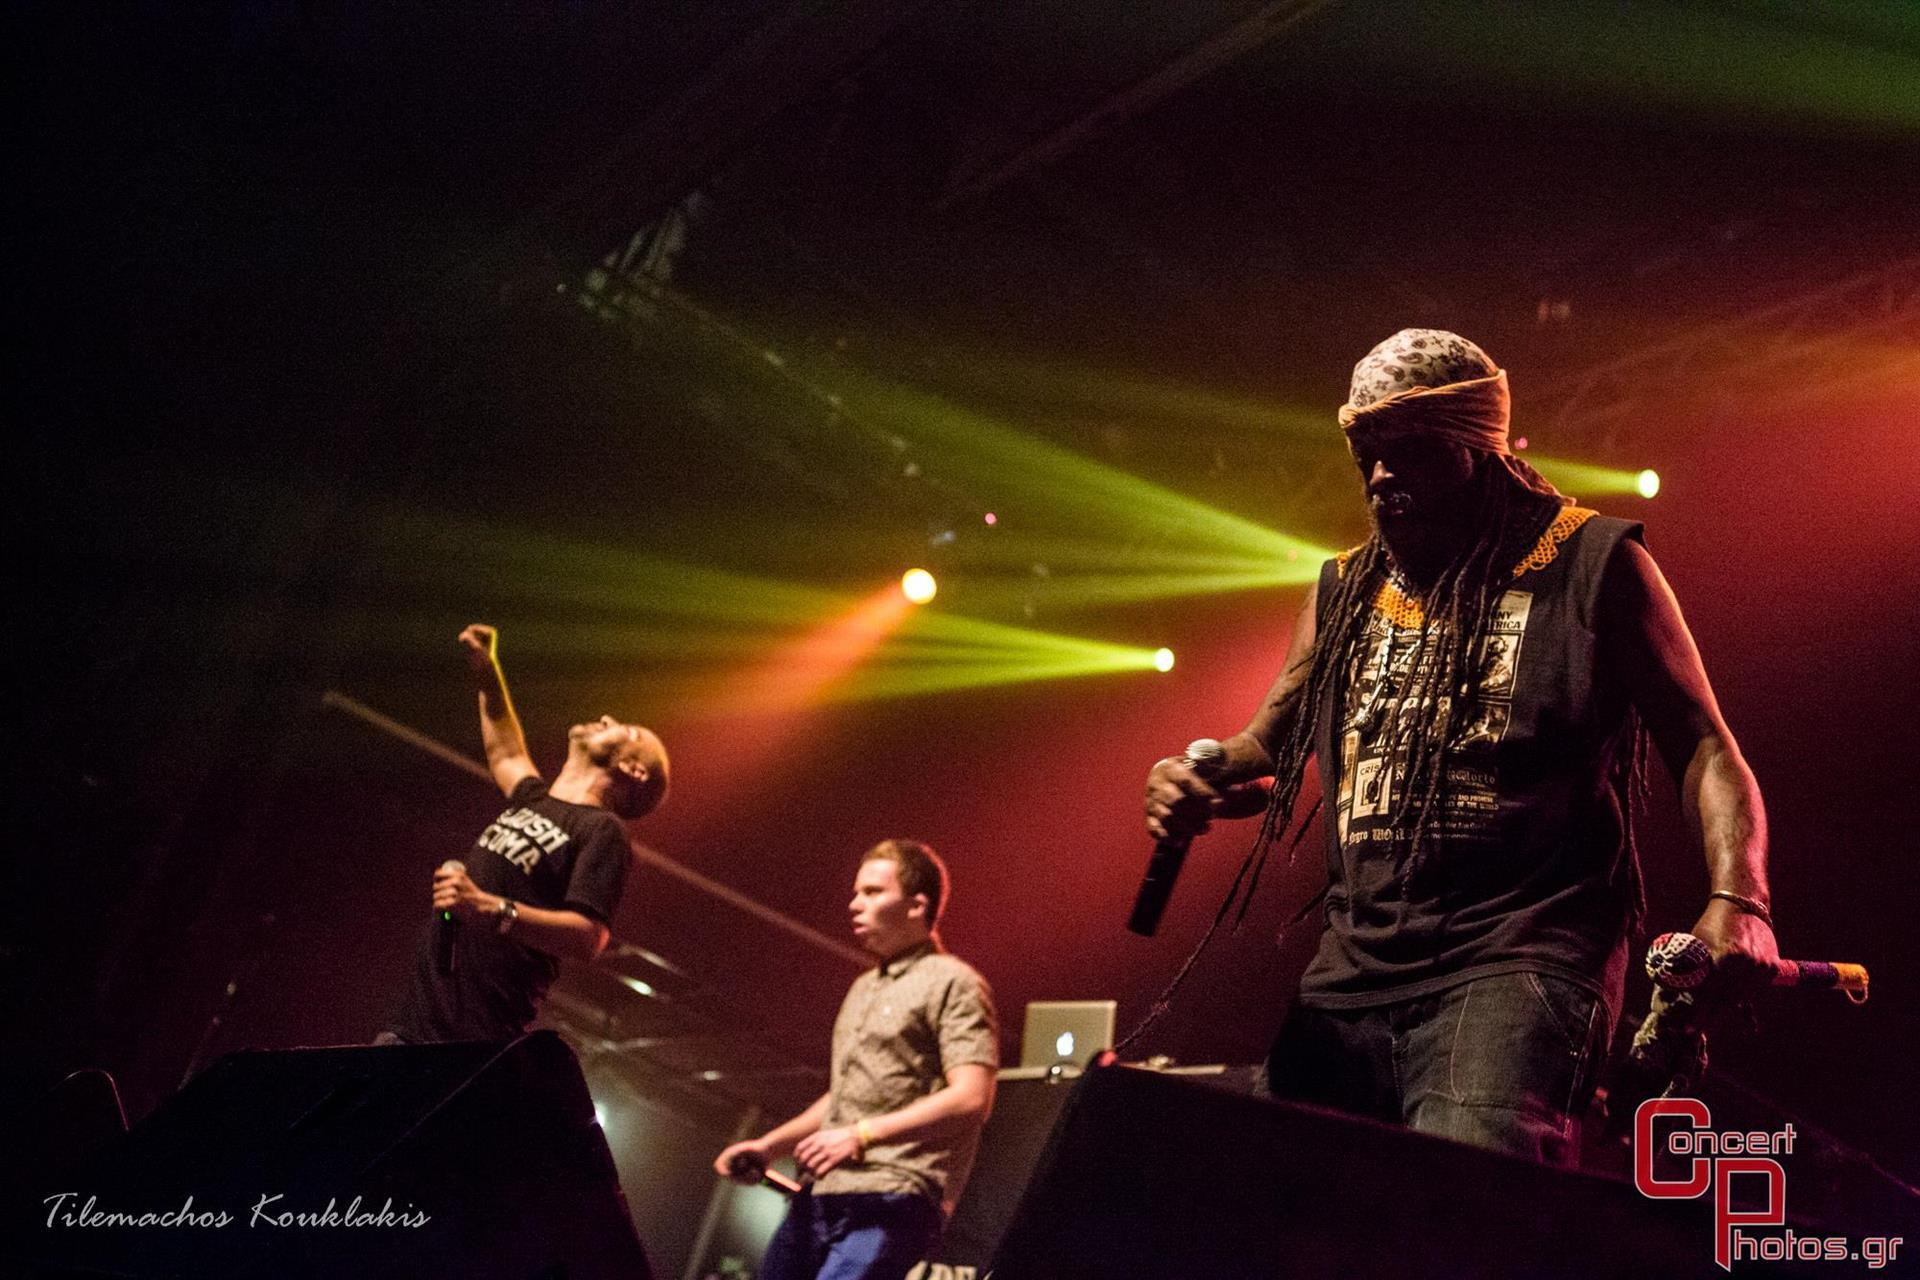 ASIAN DUB FOUNDATION Gagarin-ASIAN DUB FOUNDATION Gagarin photographer:  - 4L6A4640